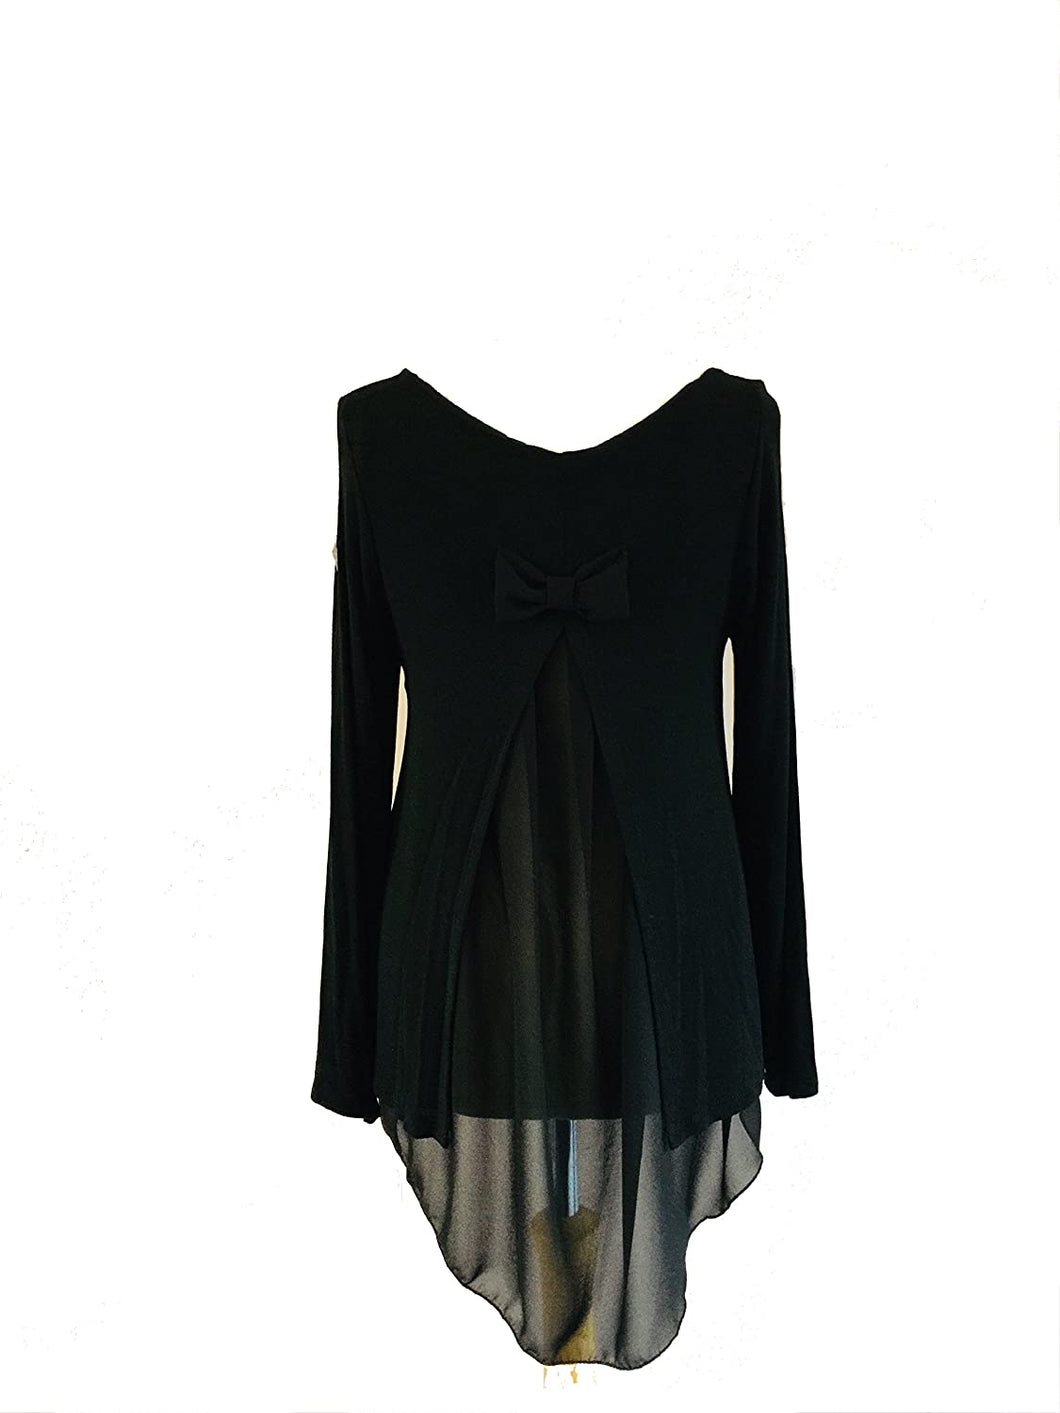 Pamper Yourself Now ltd Black Long Sleeves Split Back Bow Chiffon top. Made in Italy (AA41)